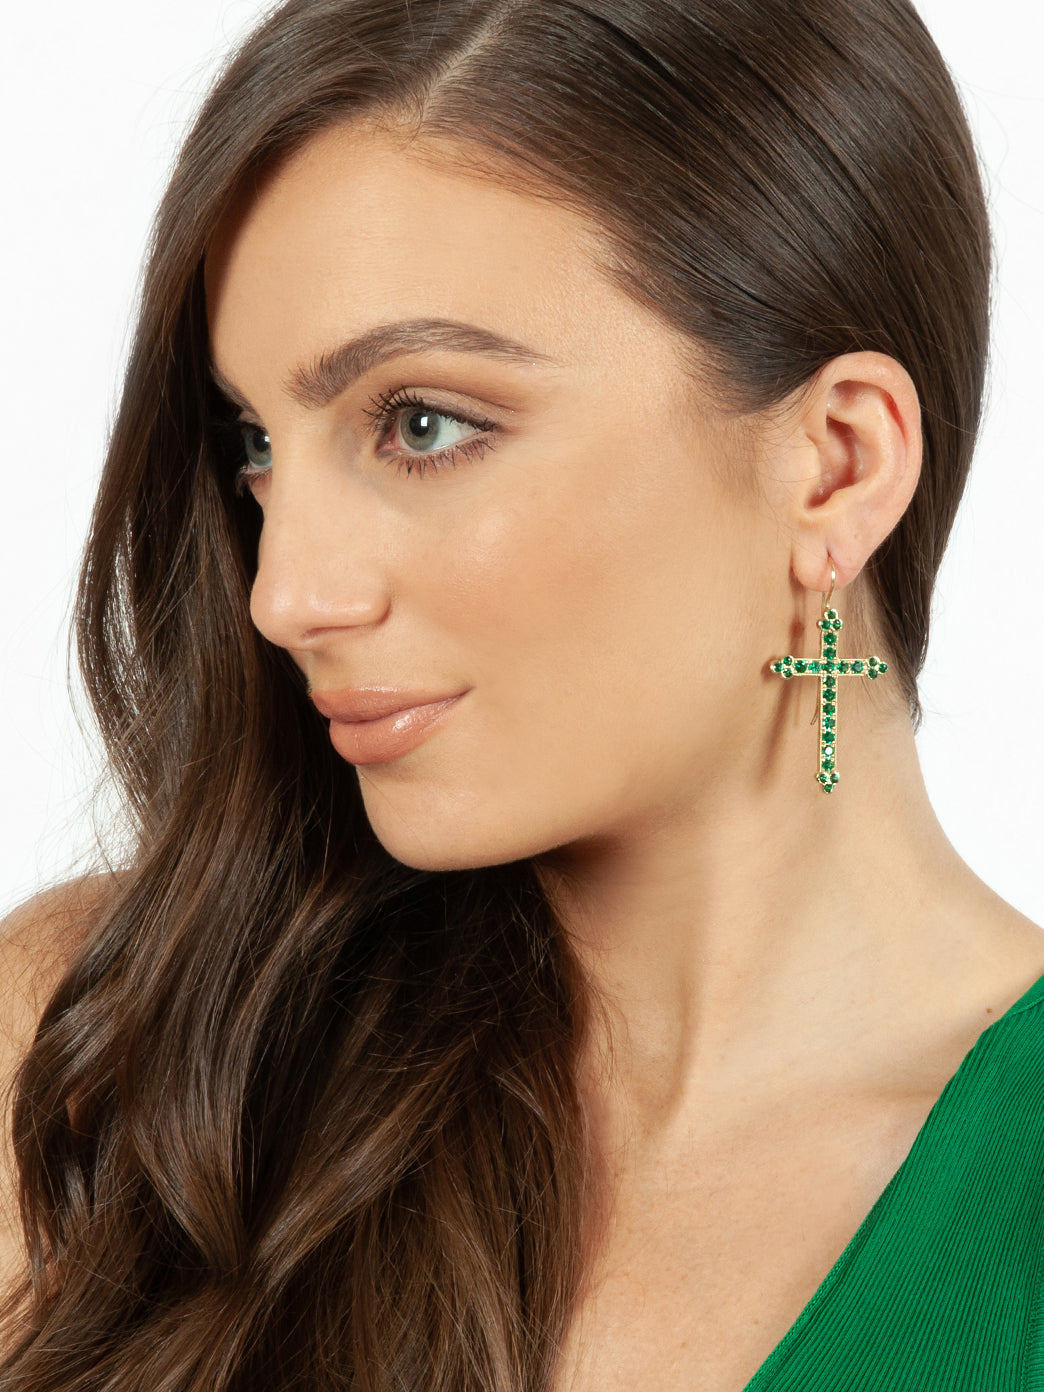 Fiorina Jewellery Gold Victoria Cross Emerald Earrings Model